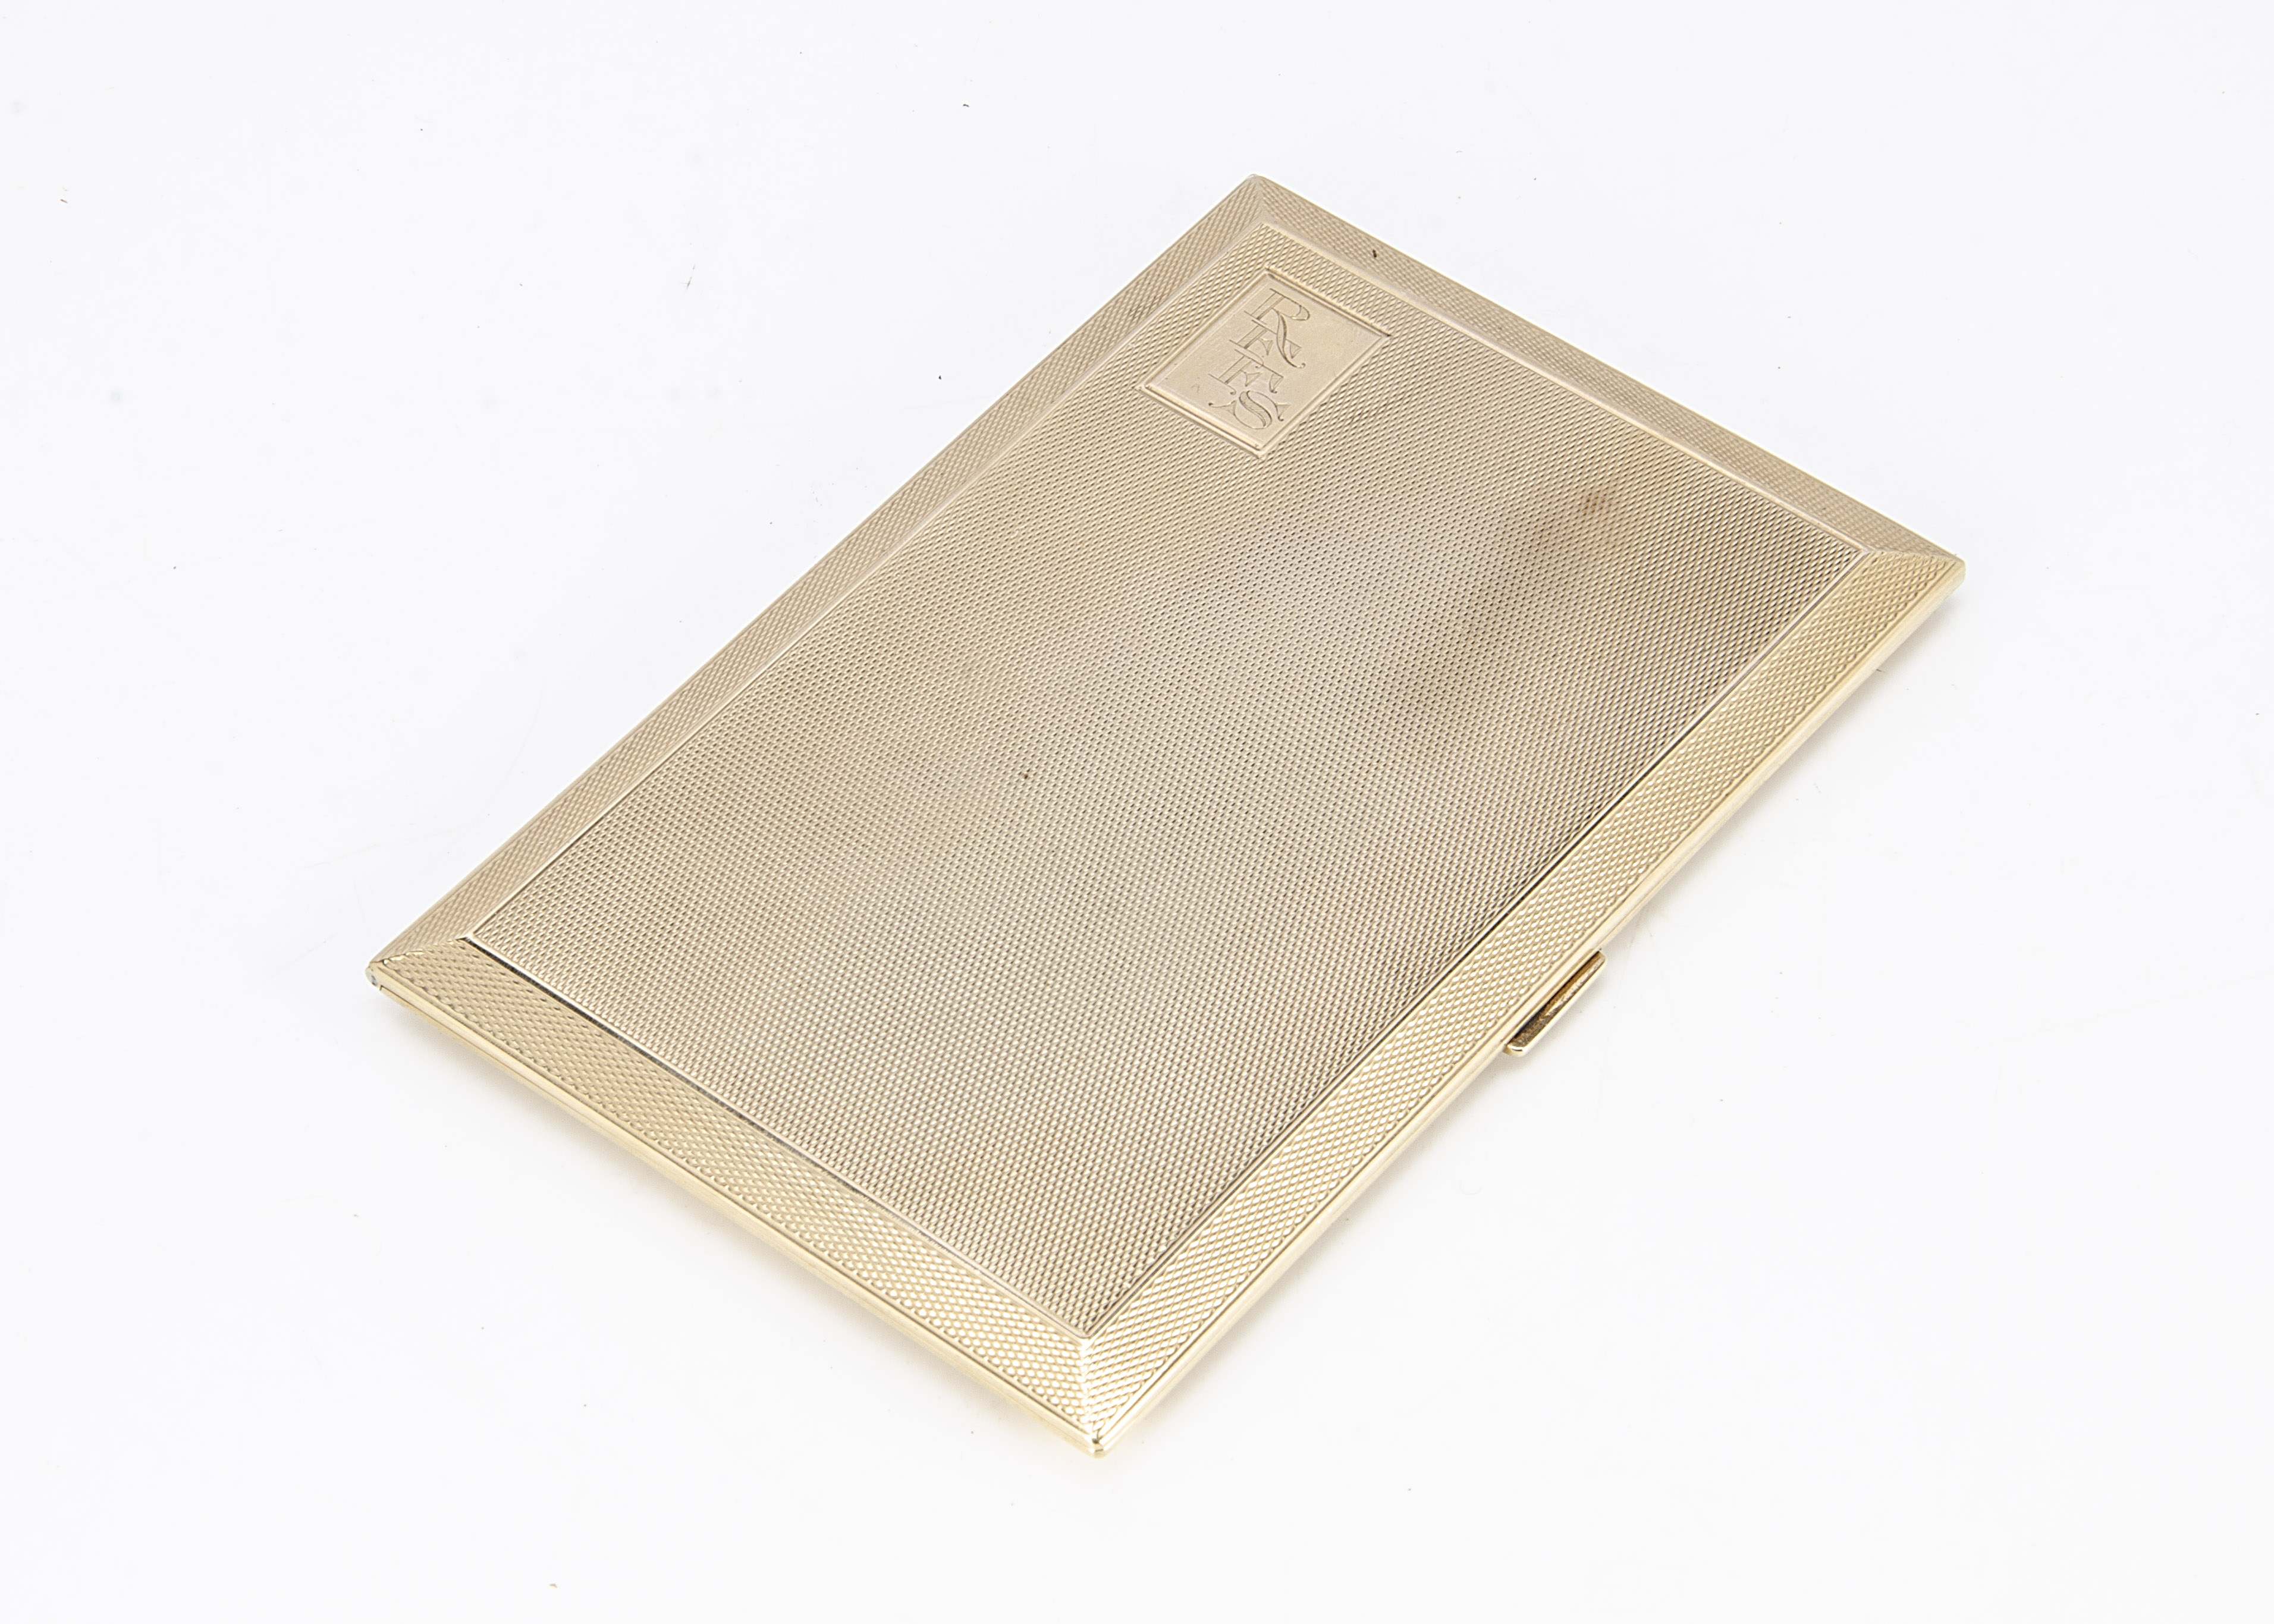 A George V 9ct gold cigarette case by C & C, rectangular with engine turned exterior, initials